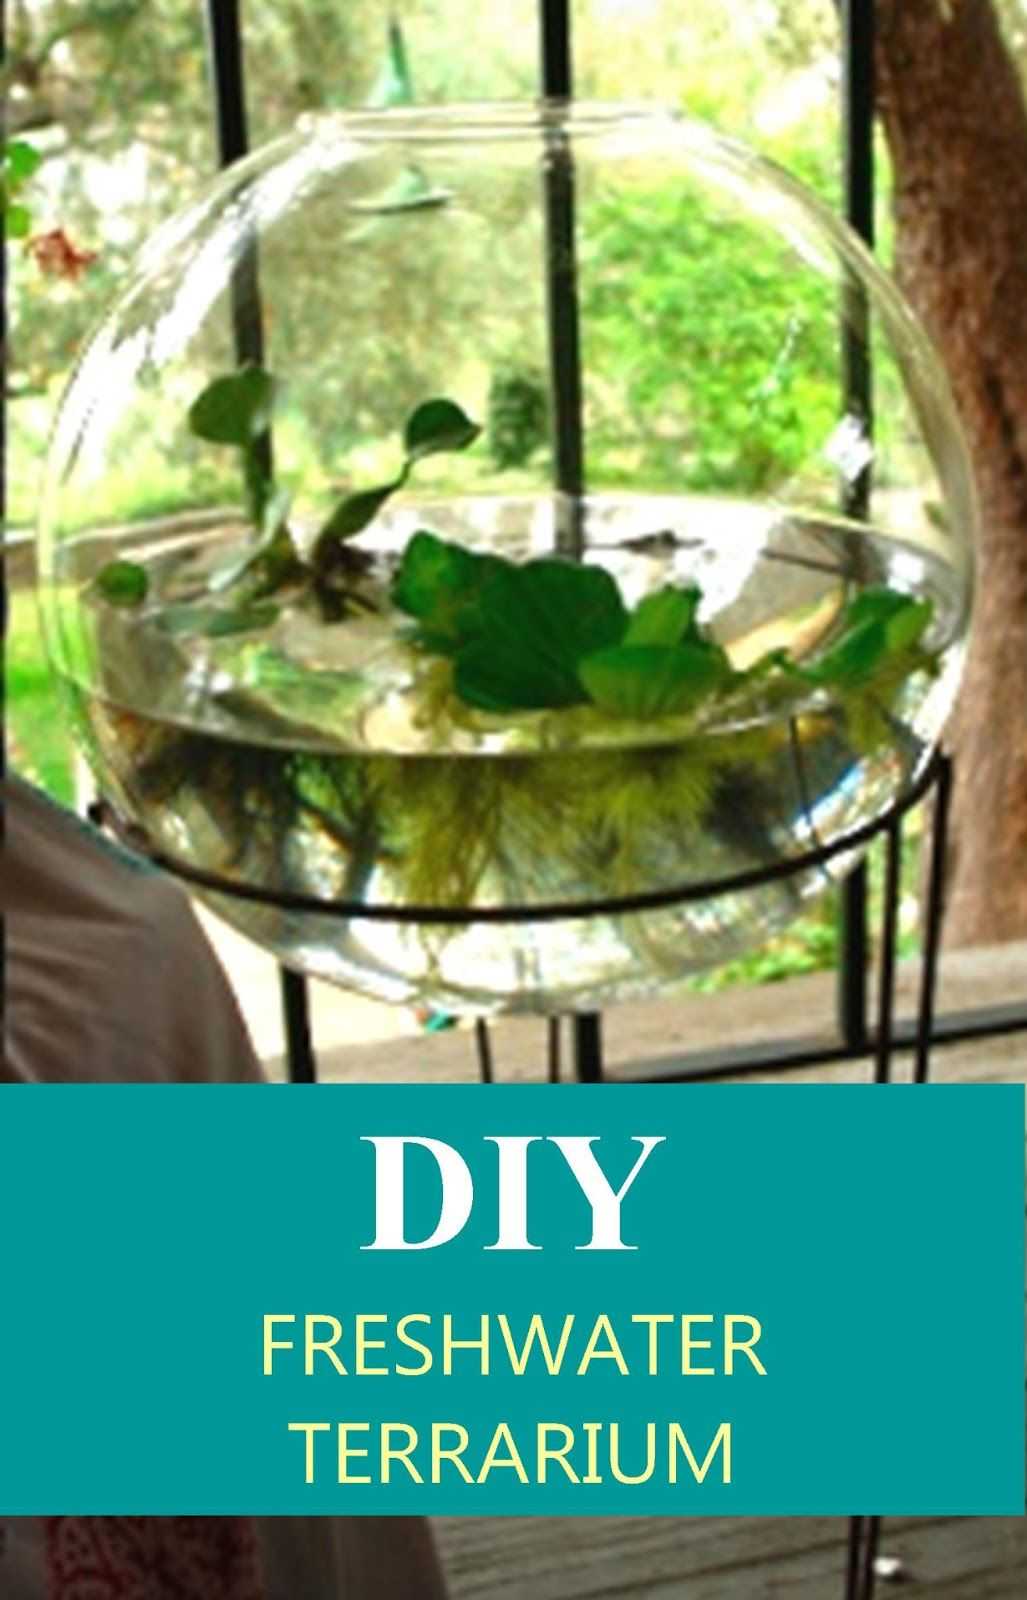 Artsea chic diy freshwater terrarium put castle covered with moss